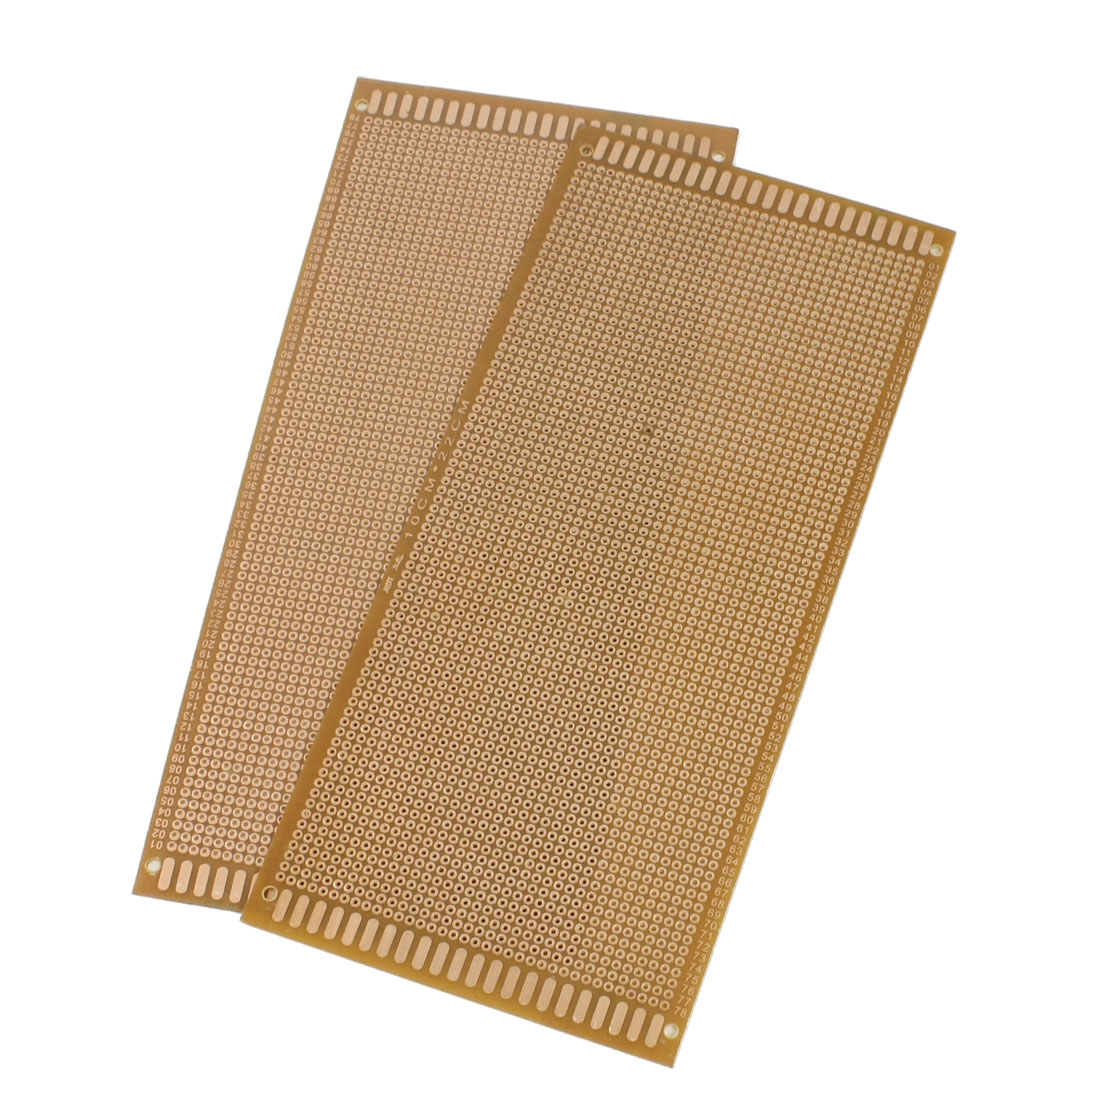 2 Pcs Copper Tone Prototyping PCB Print Circuit Board 10cm x 22cm